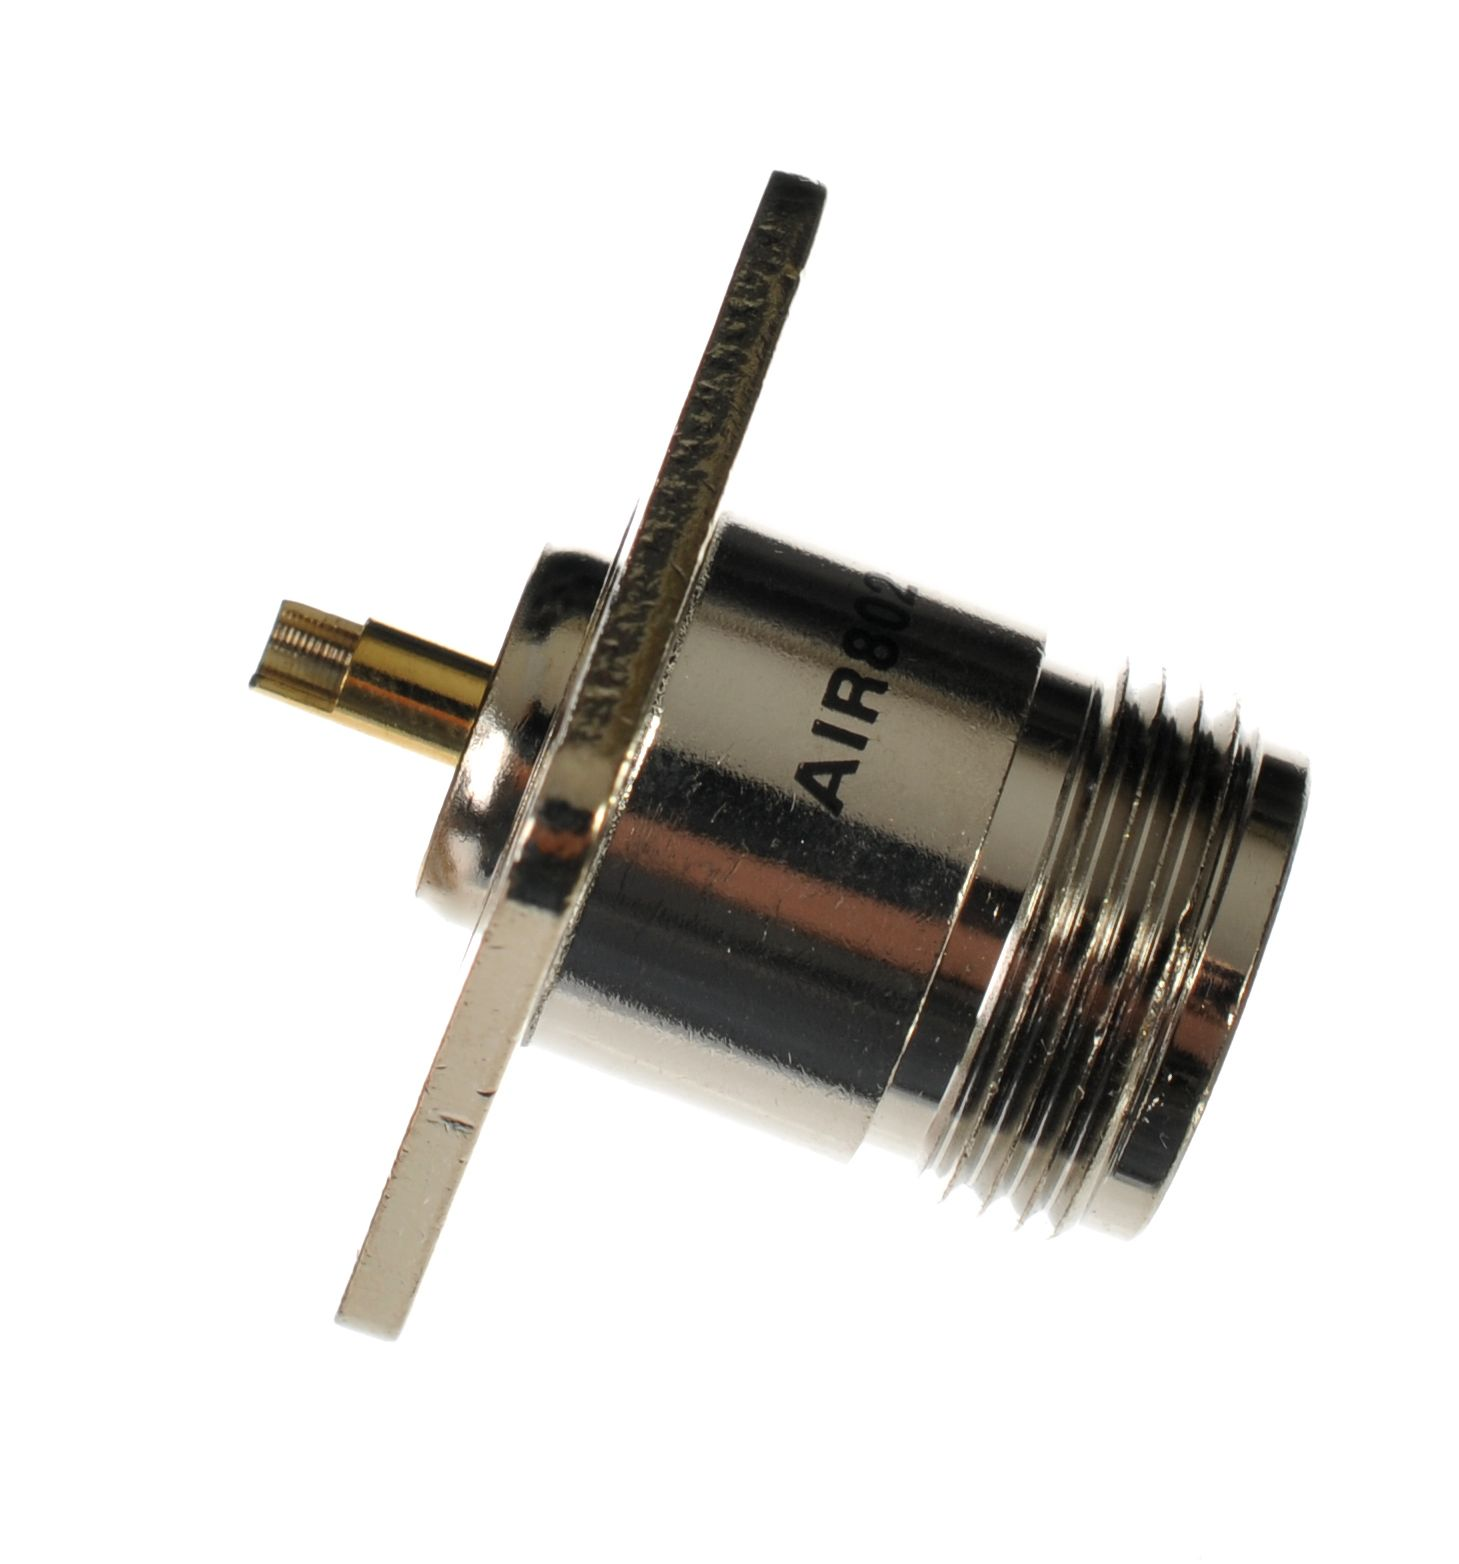 N jack or female chassis mounted 4-hole 1 inch flange connector for solder.